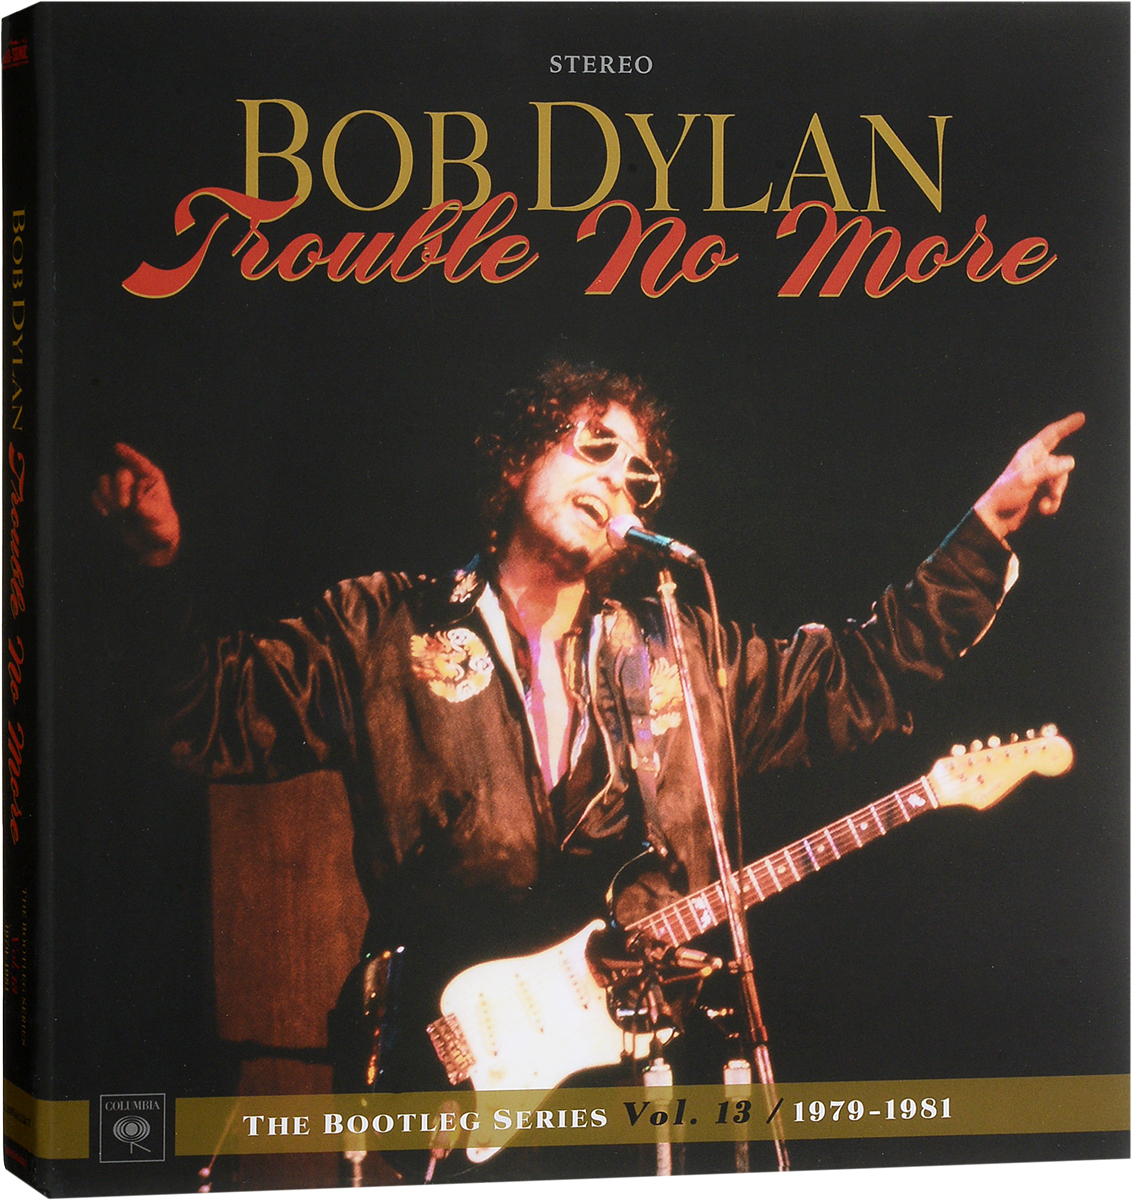 Боб Дилан Bob Dylan. Trouble No More: The Bootleg Series Vol. 13 / 1979-1981 (4 LP + 2 CD)